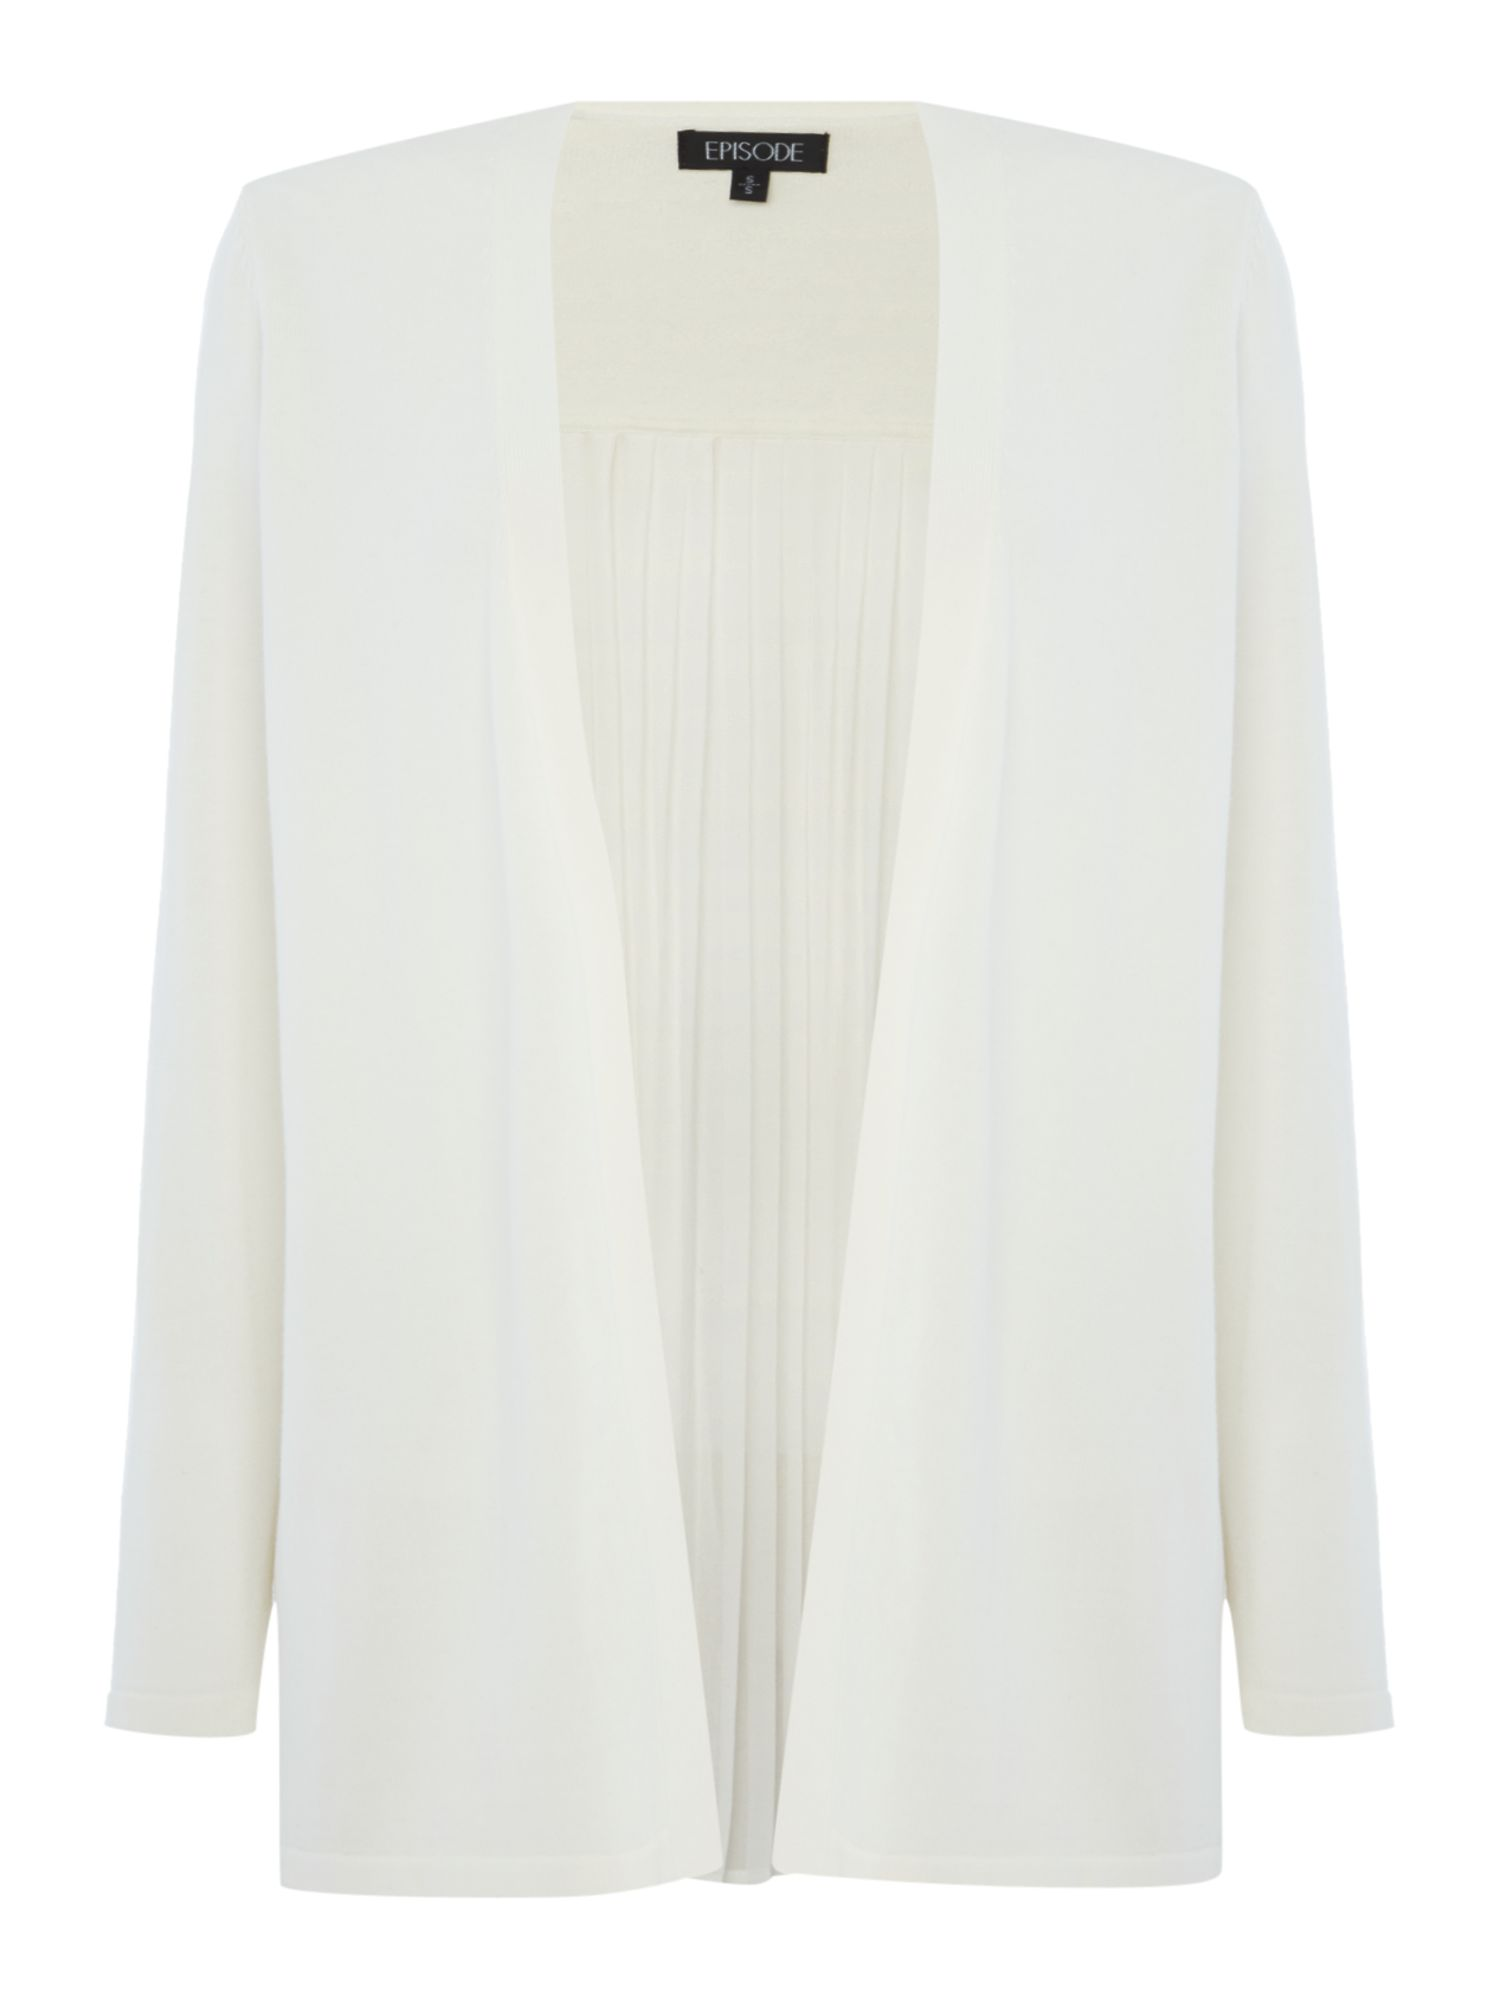 Episode Episode Knitted cardigan with pleated back, Off White